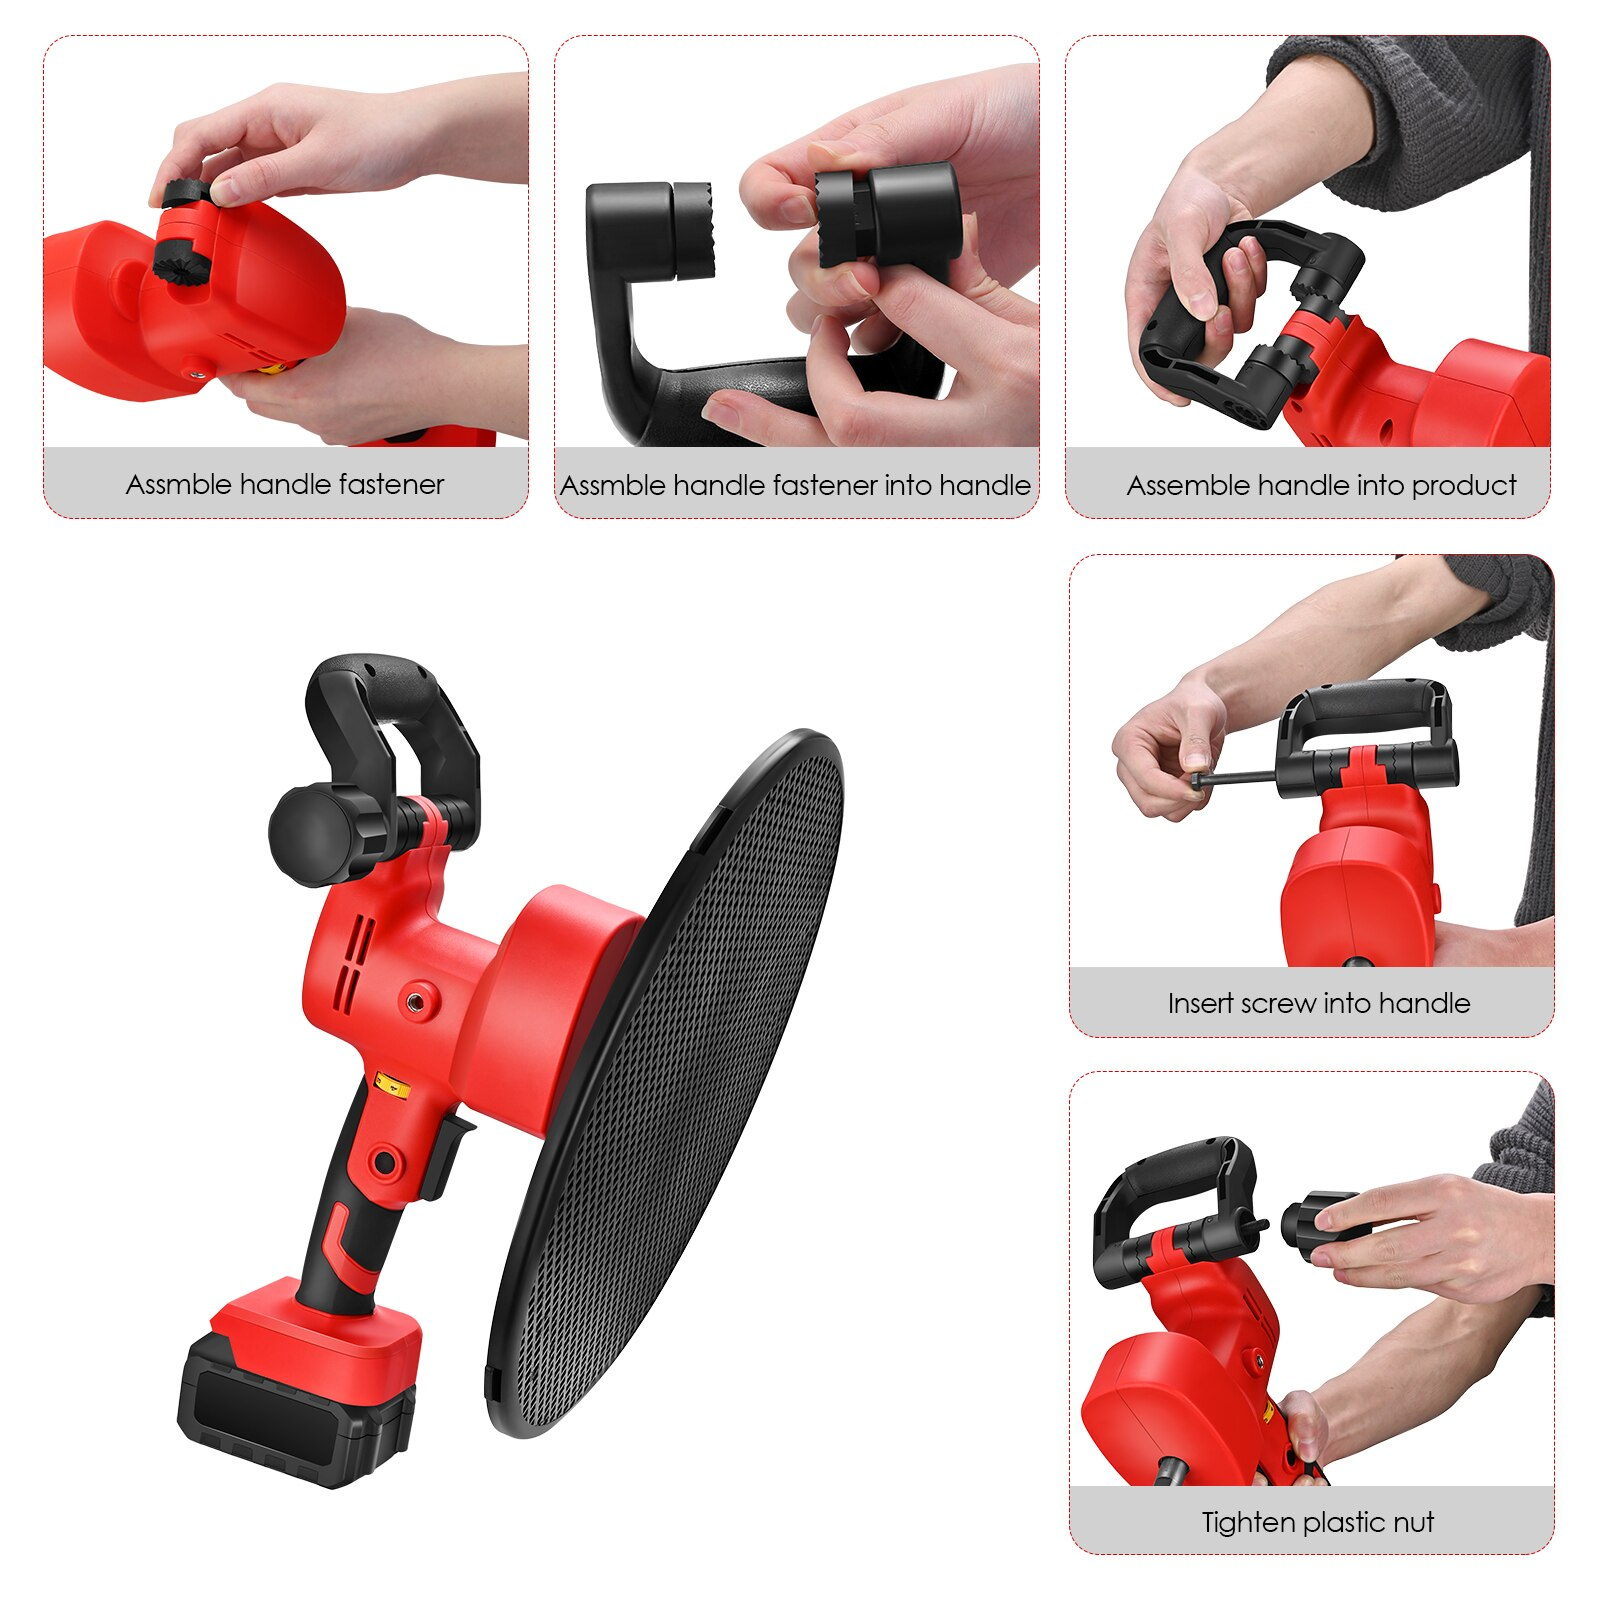 2-in-1 machine 1-6 speed Adjustable Two-handle 6